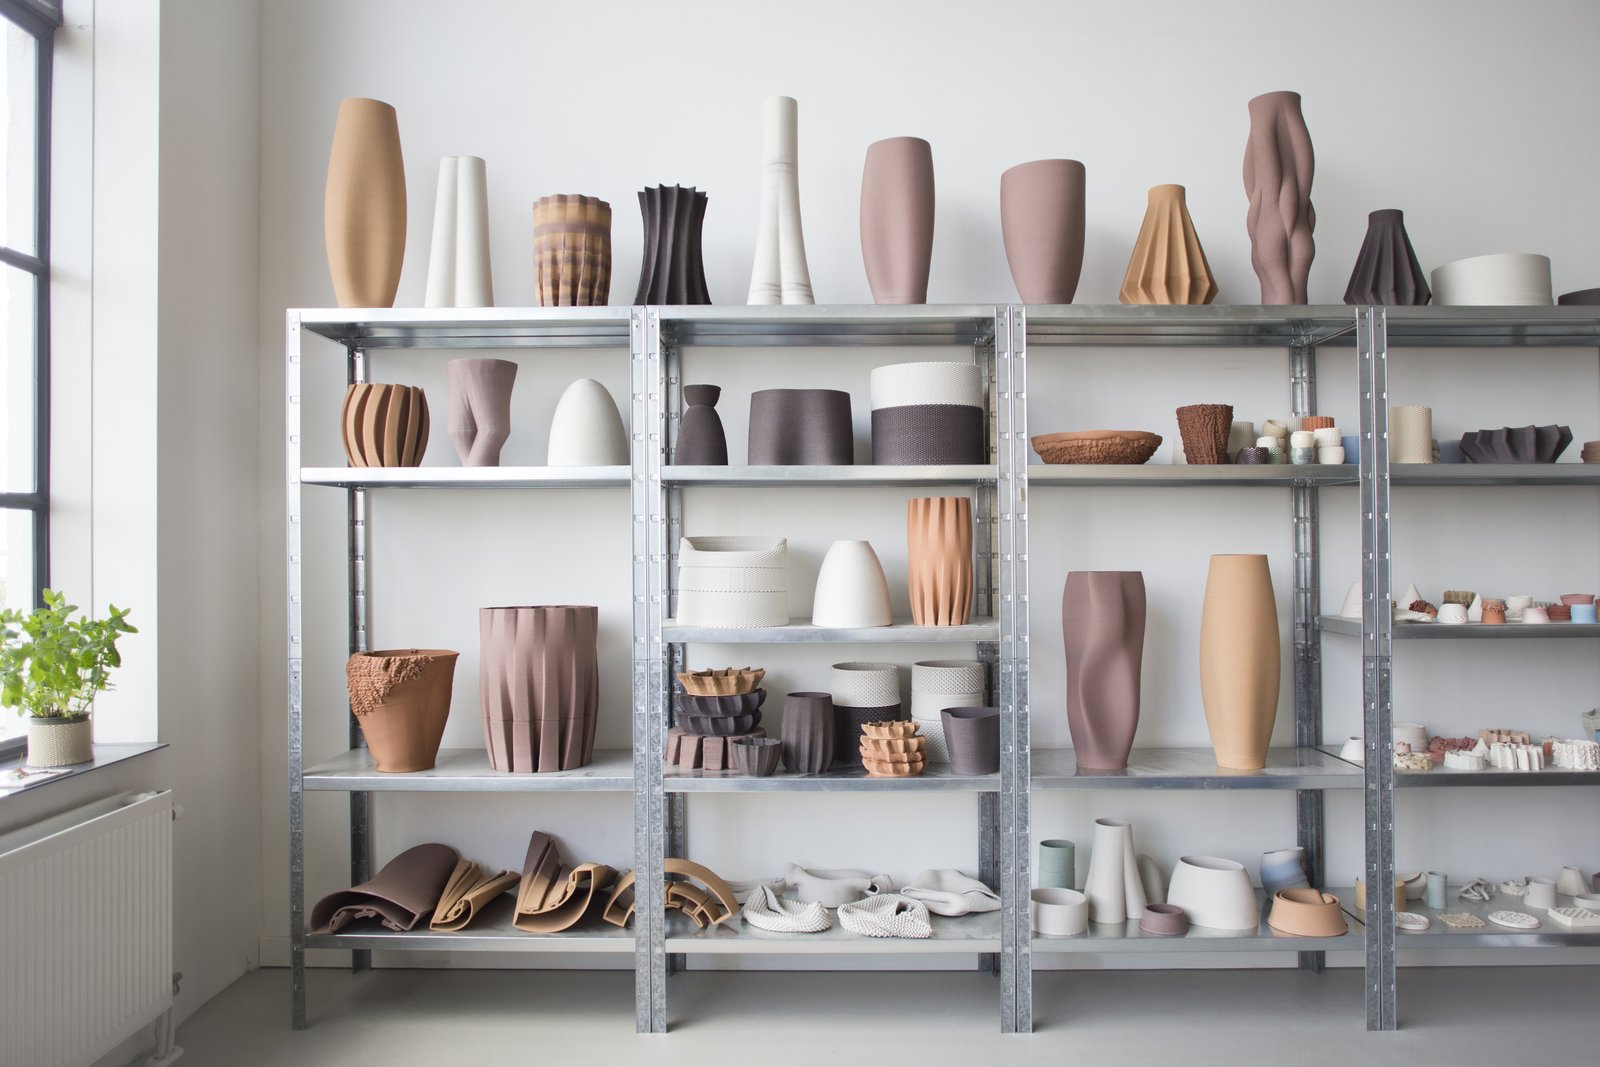 This year's New Material Award prize goes to Olivier van Herpt, who designed and built a 3D printer that can deposit layers of undiluted clay with fine detail.   newmaterialaward.nl  From the Editors' Inbox: October 2016 by Heather Corcoran